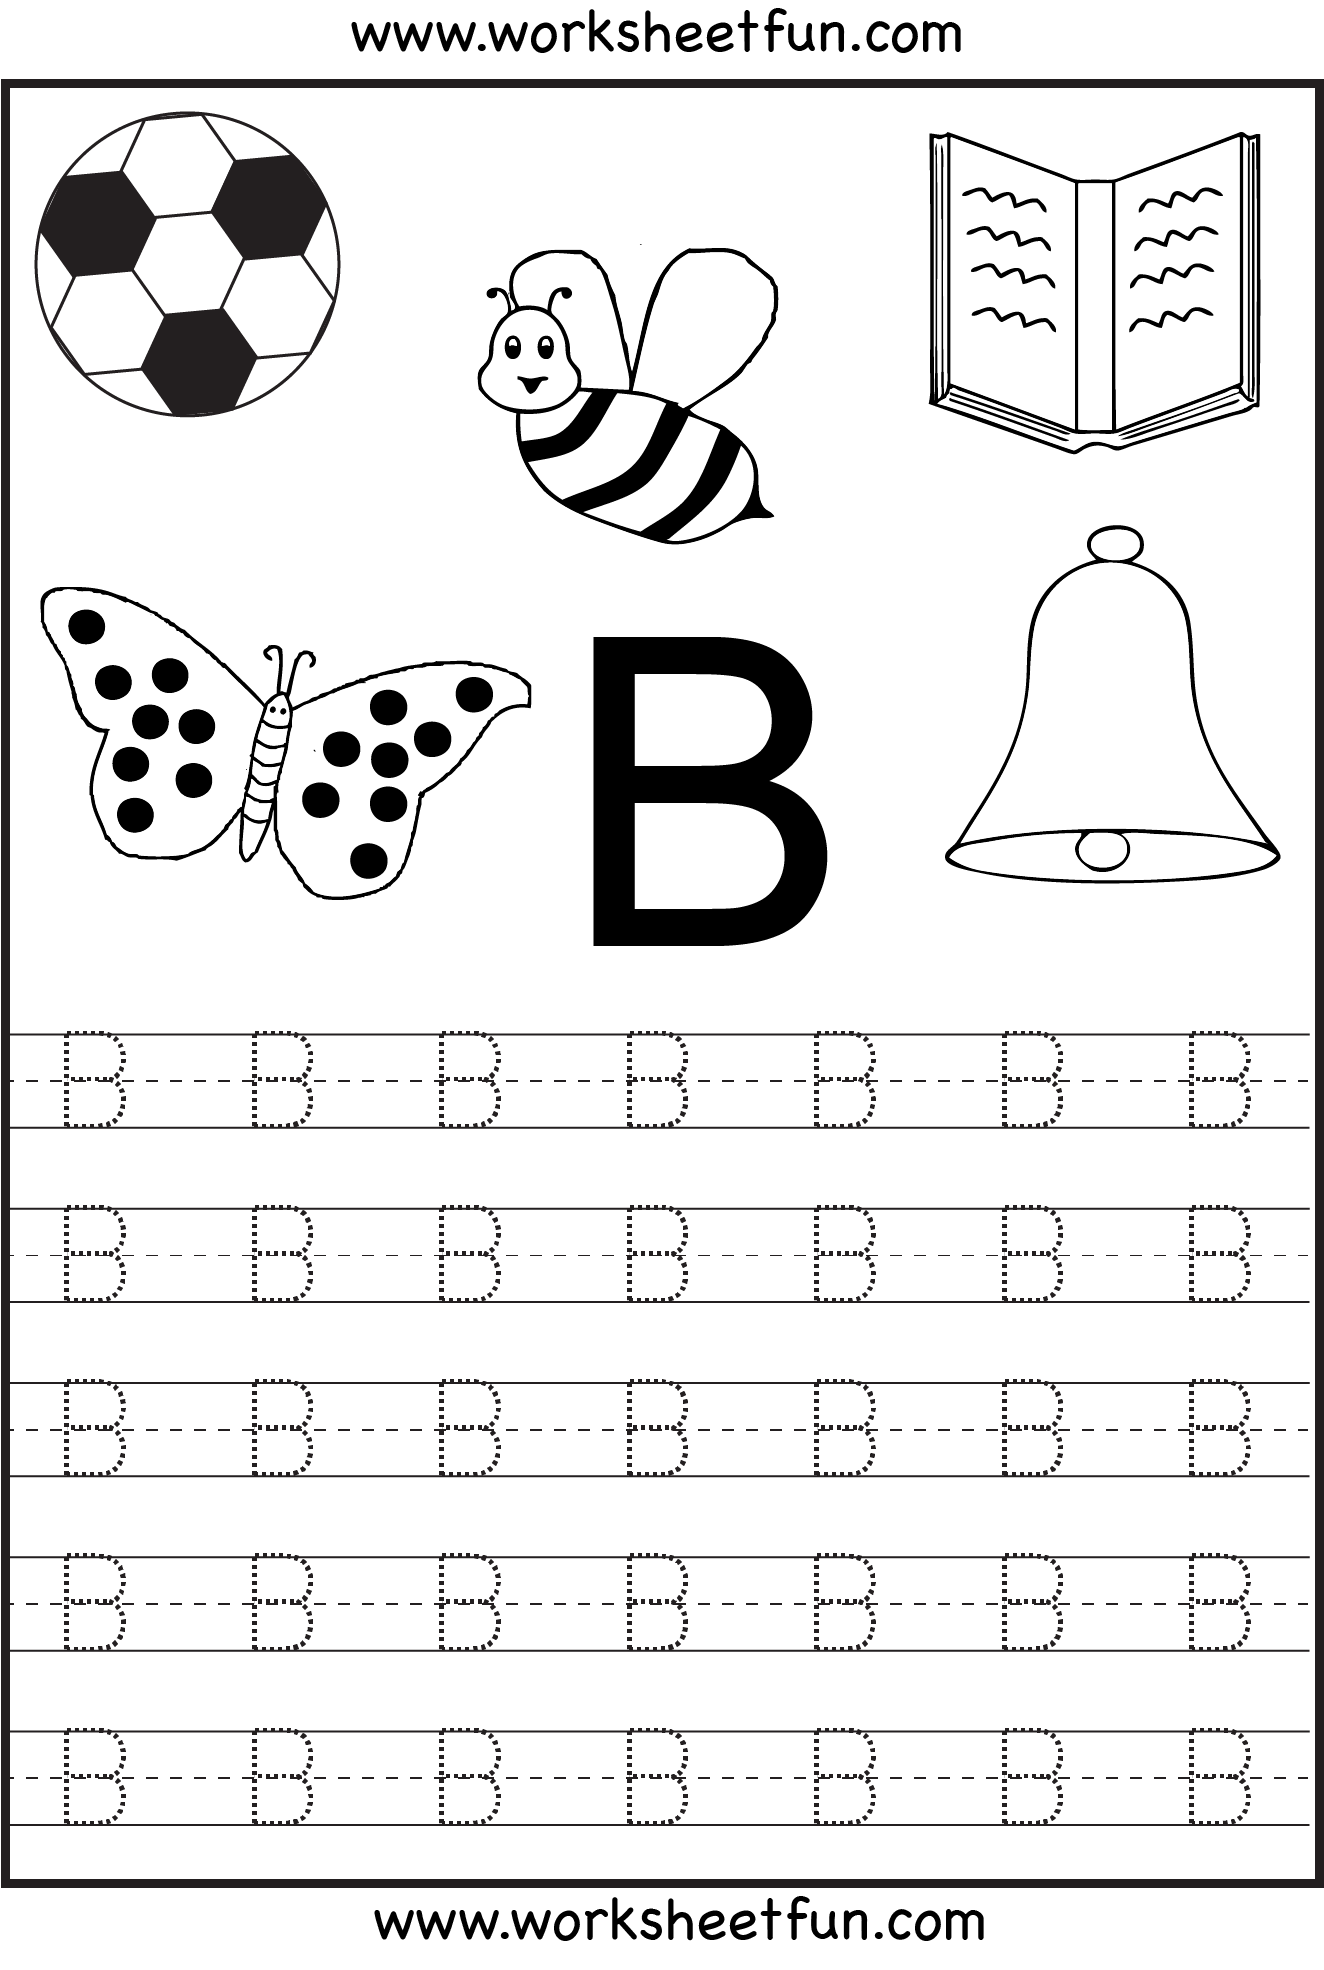 free printable letter tracing worksheets for kindergarten 26 worksheets abc123 preschool. Black Bedroom Furniture Sets. Home Design Ideas